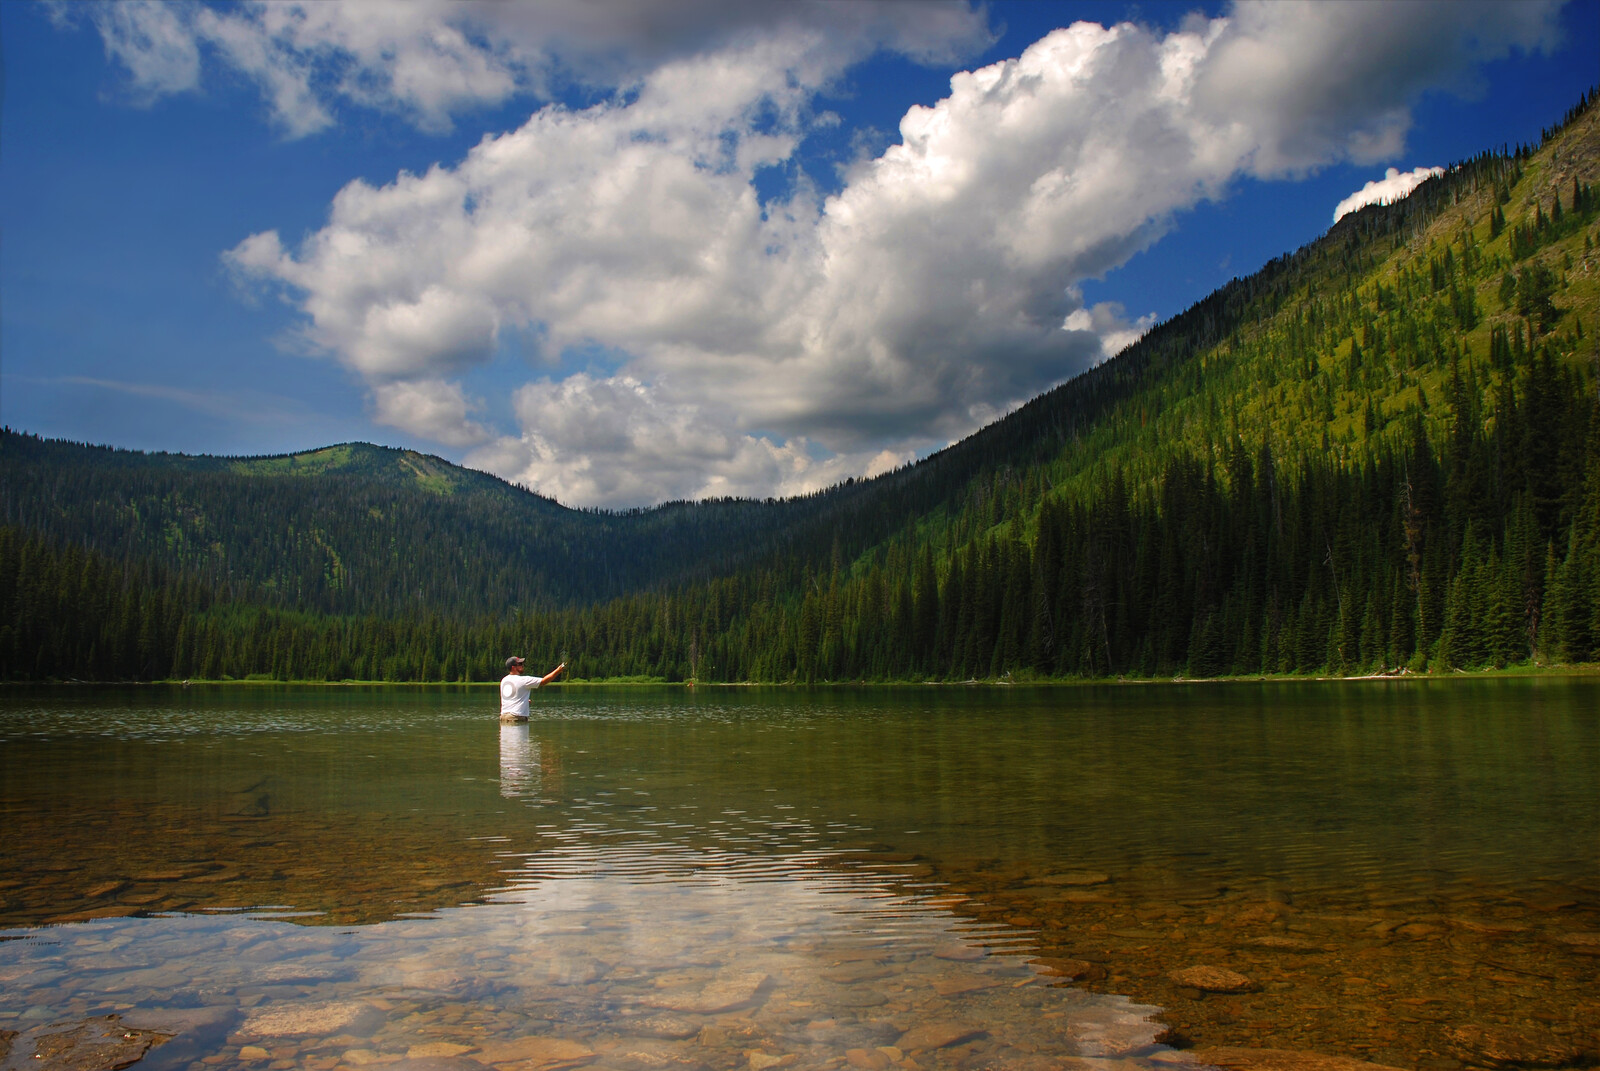 Man fly fishing in a clear lake on a blue day with white puffy clouds surrounded by hills covered in pines